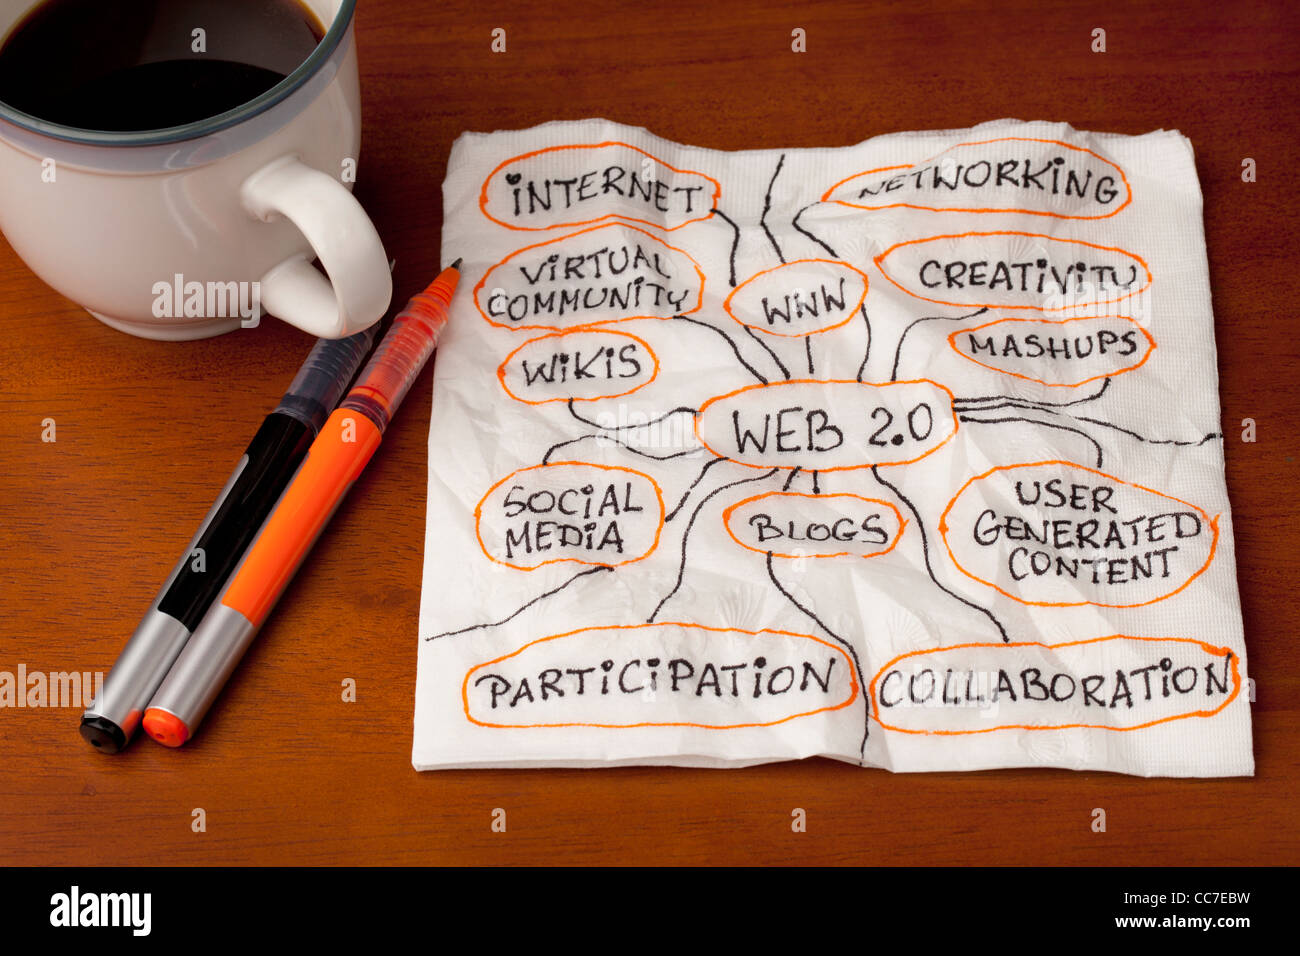 words and topics related to web 2.0, modern internet version - napkin concept with coffee cup on wooden table - Stock Image